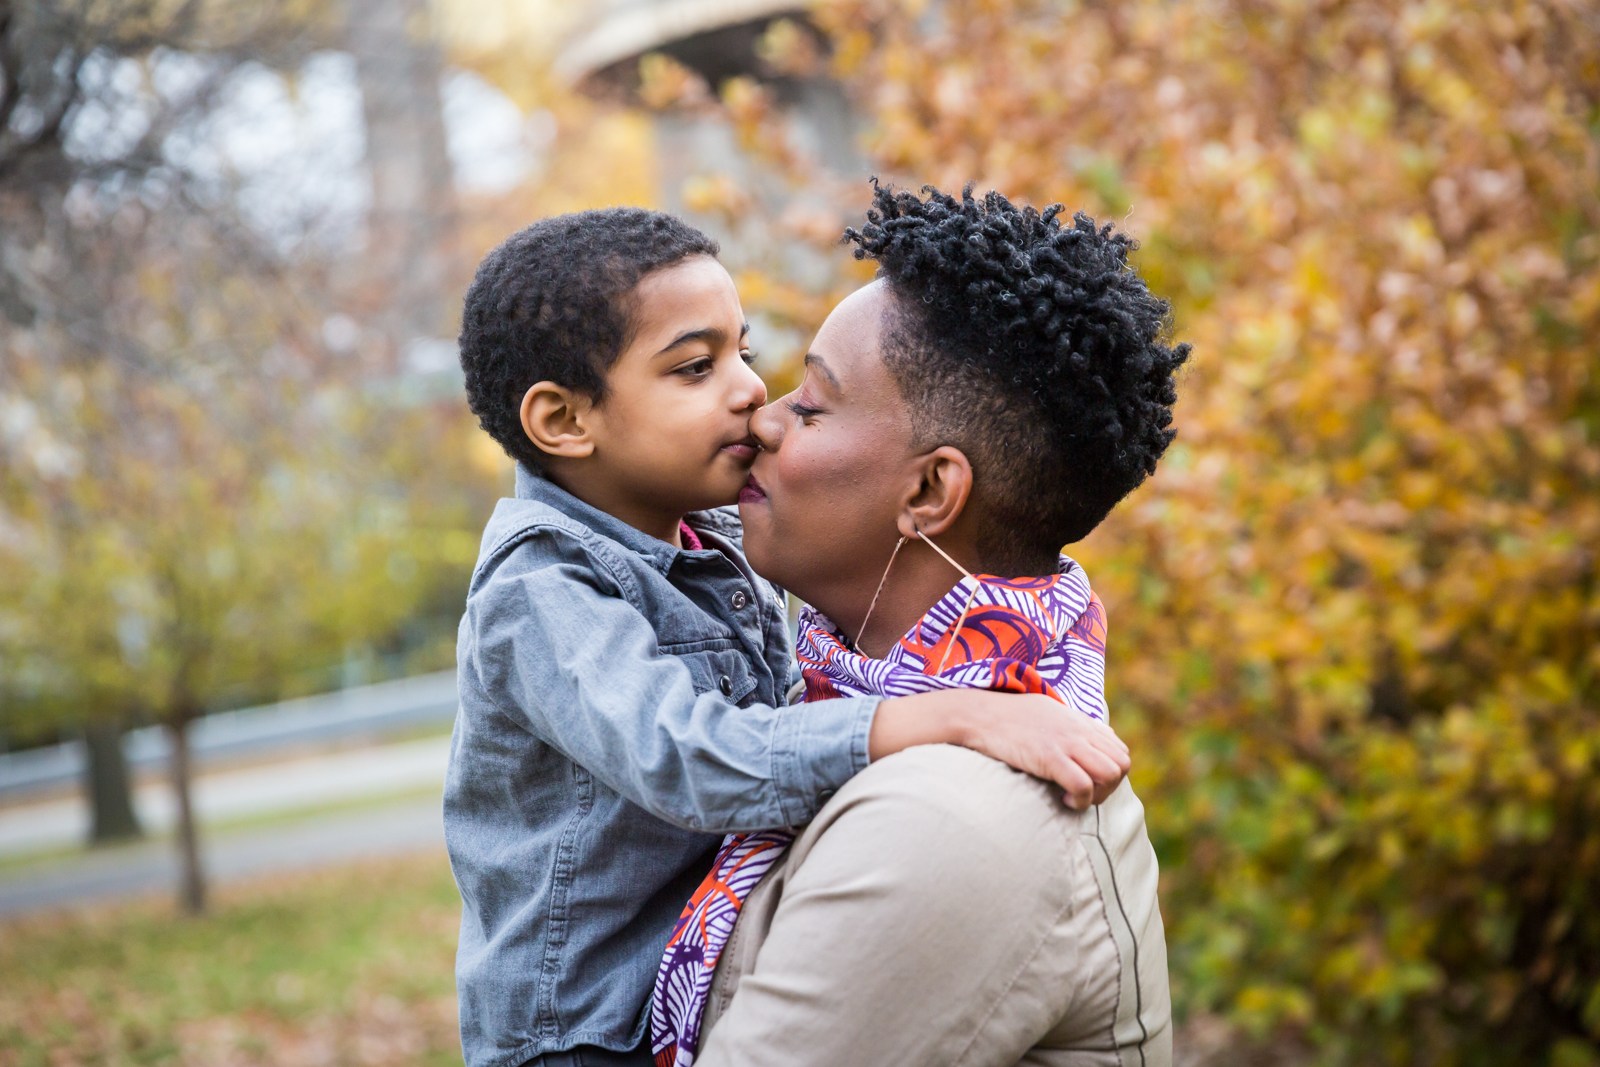 Flushing Meadows Corona Park family portrait of son kissing mother